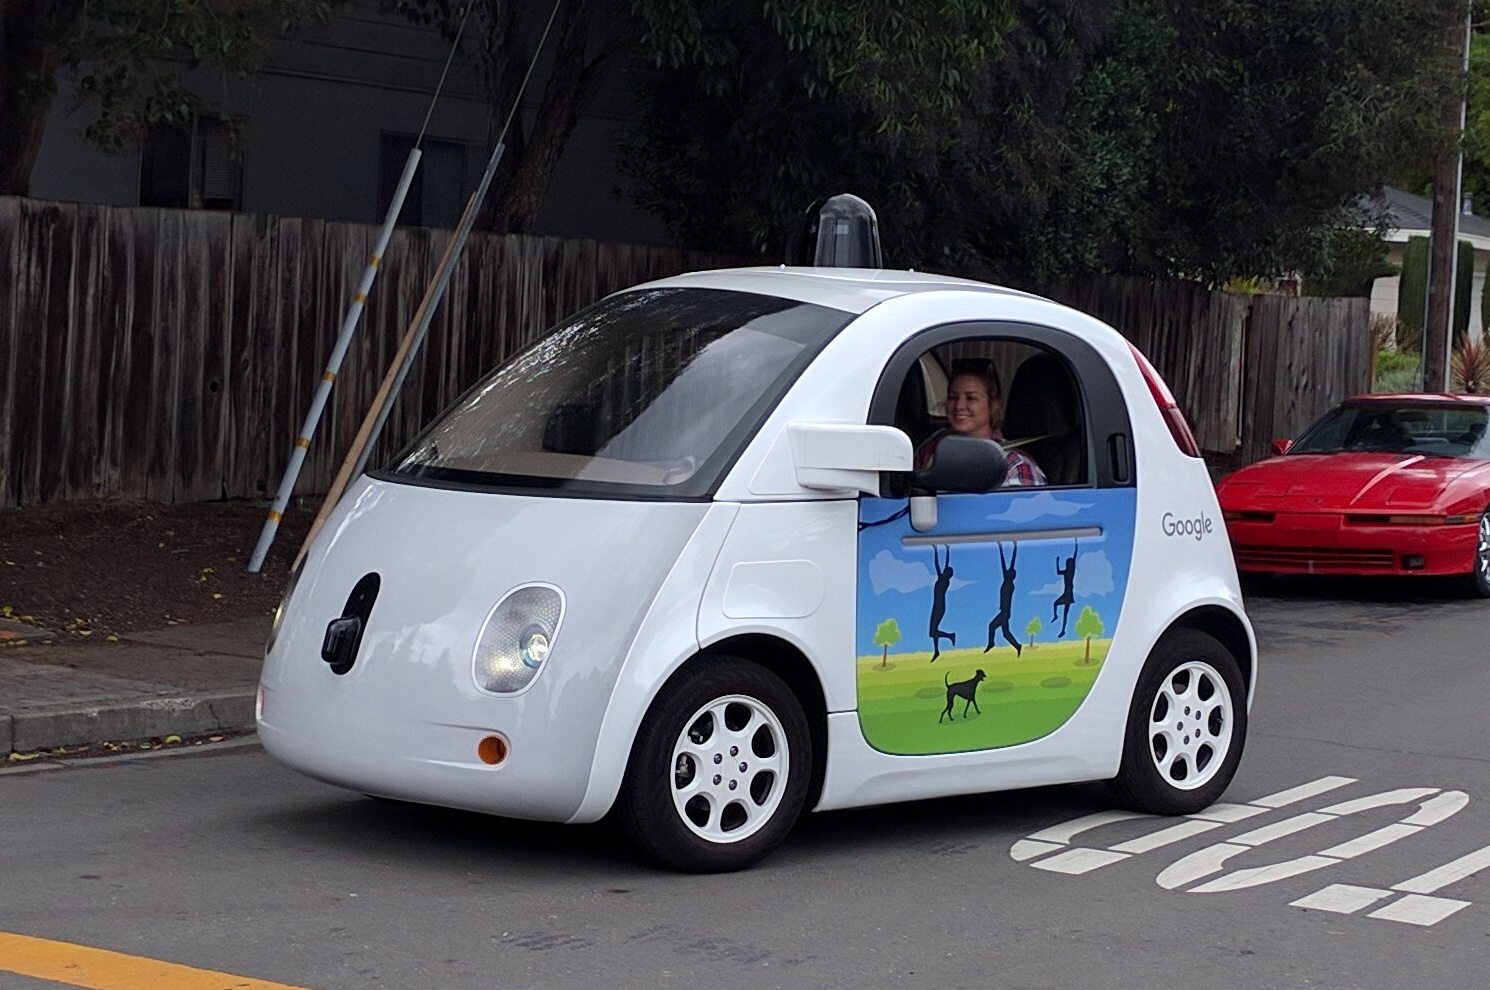 autonomous vehicles work to make roads safer impakter car 3